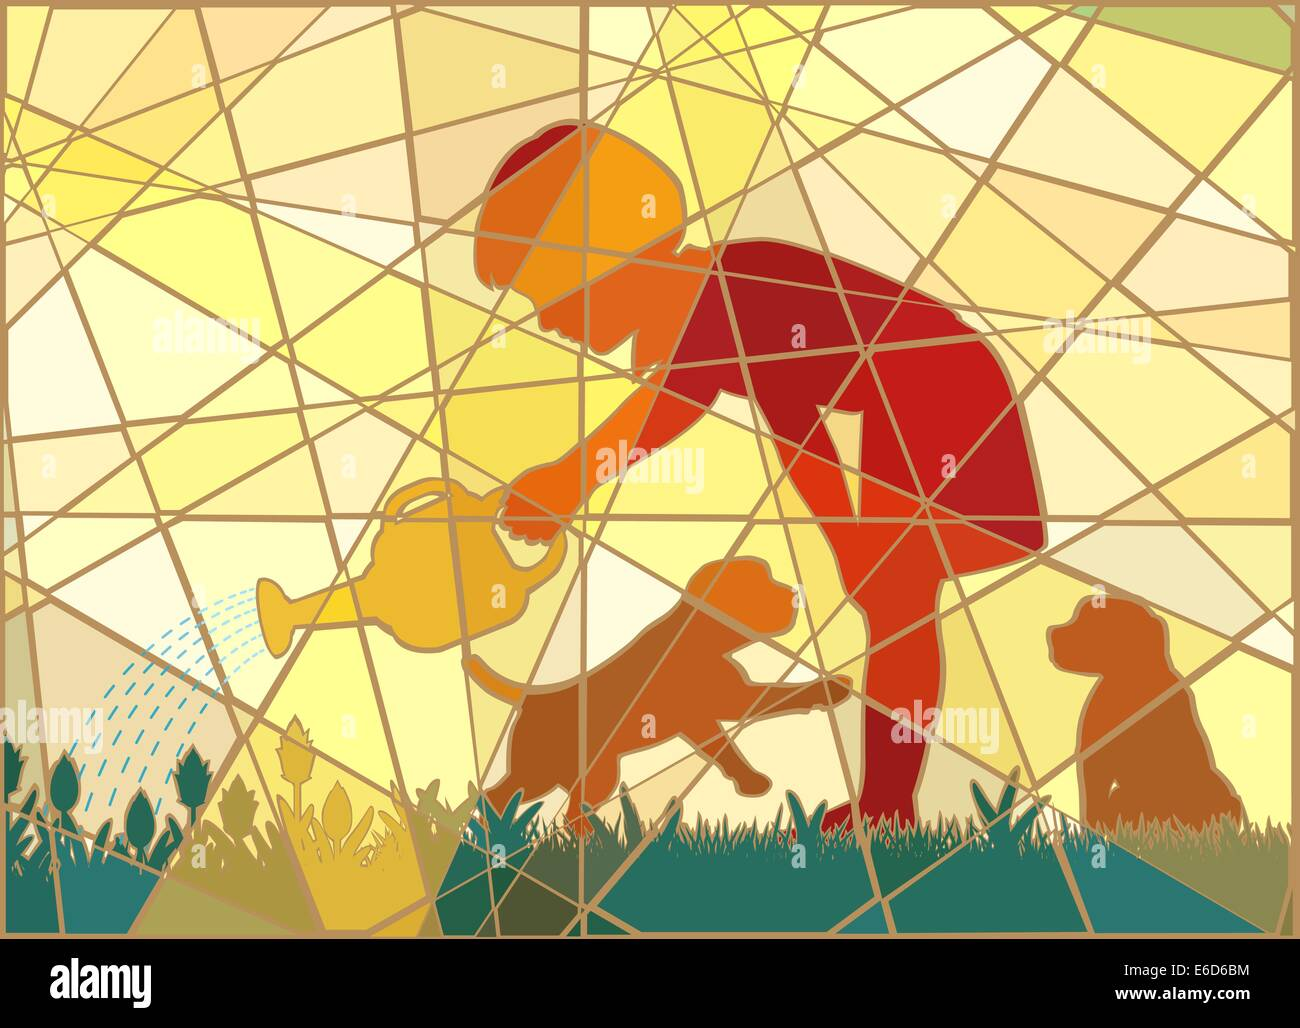 Editable vector colorful mosaic illustration of a young girl watering her garden with two puppies in summer - Stock Image